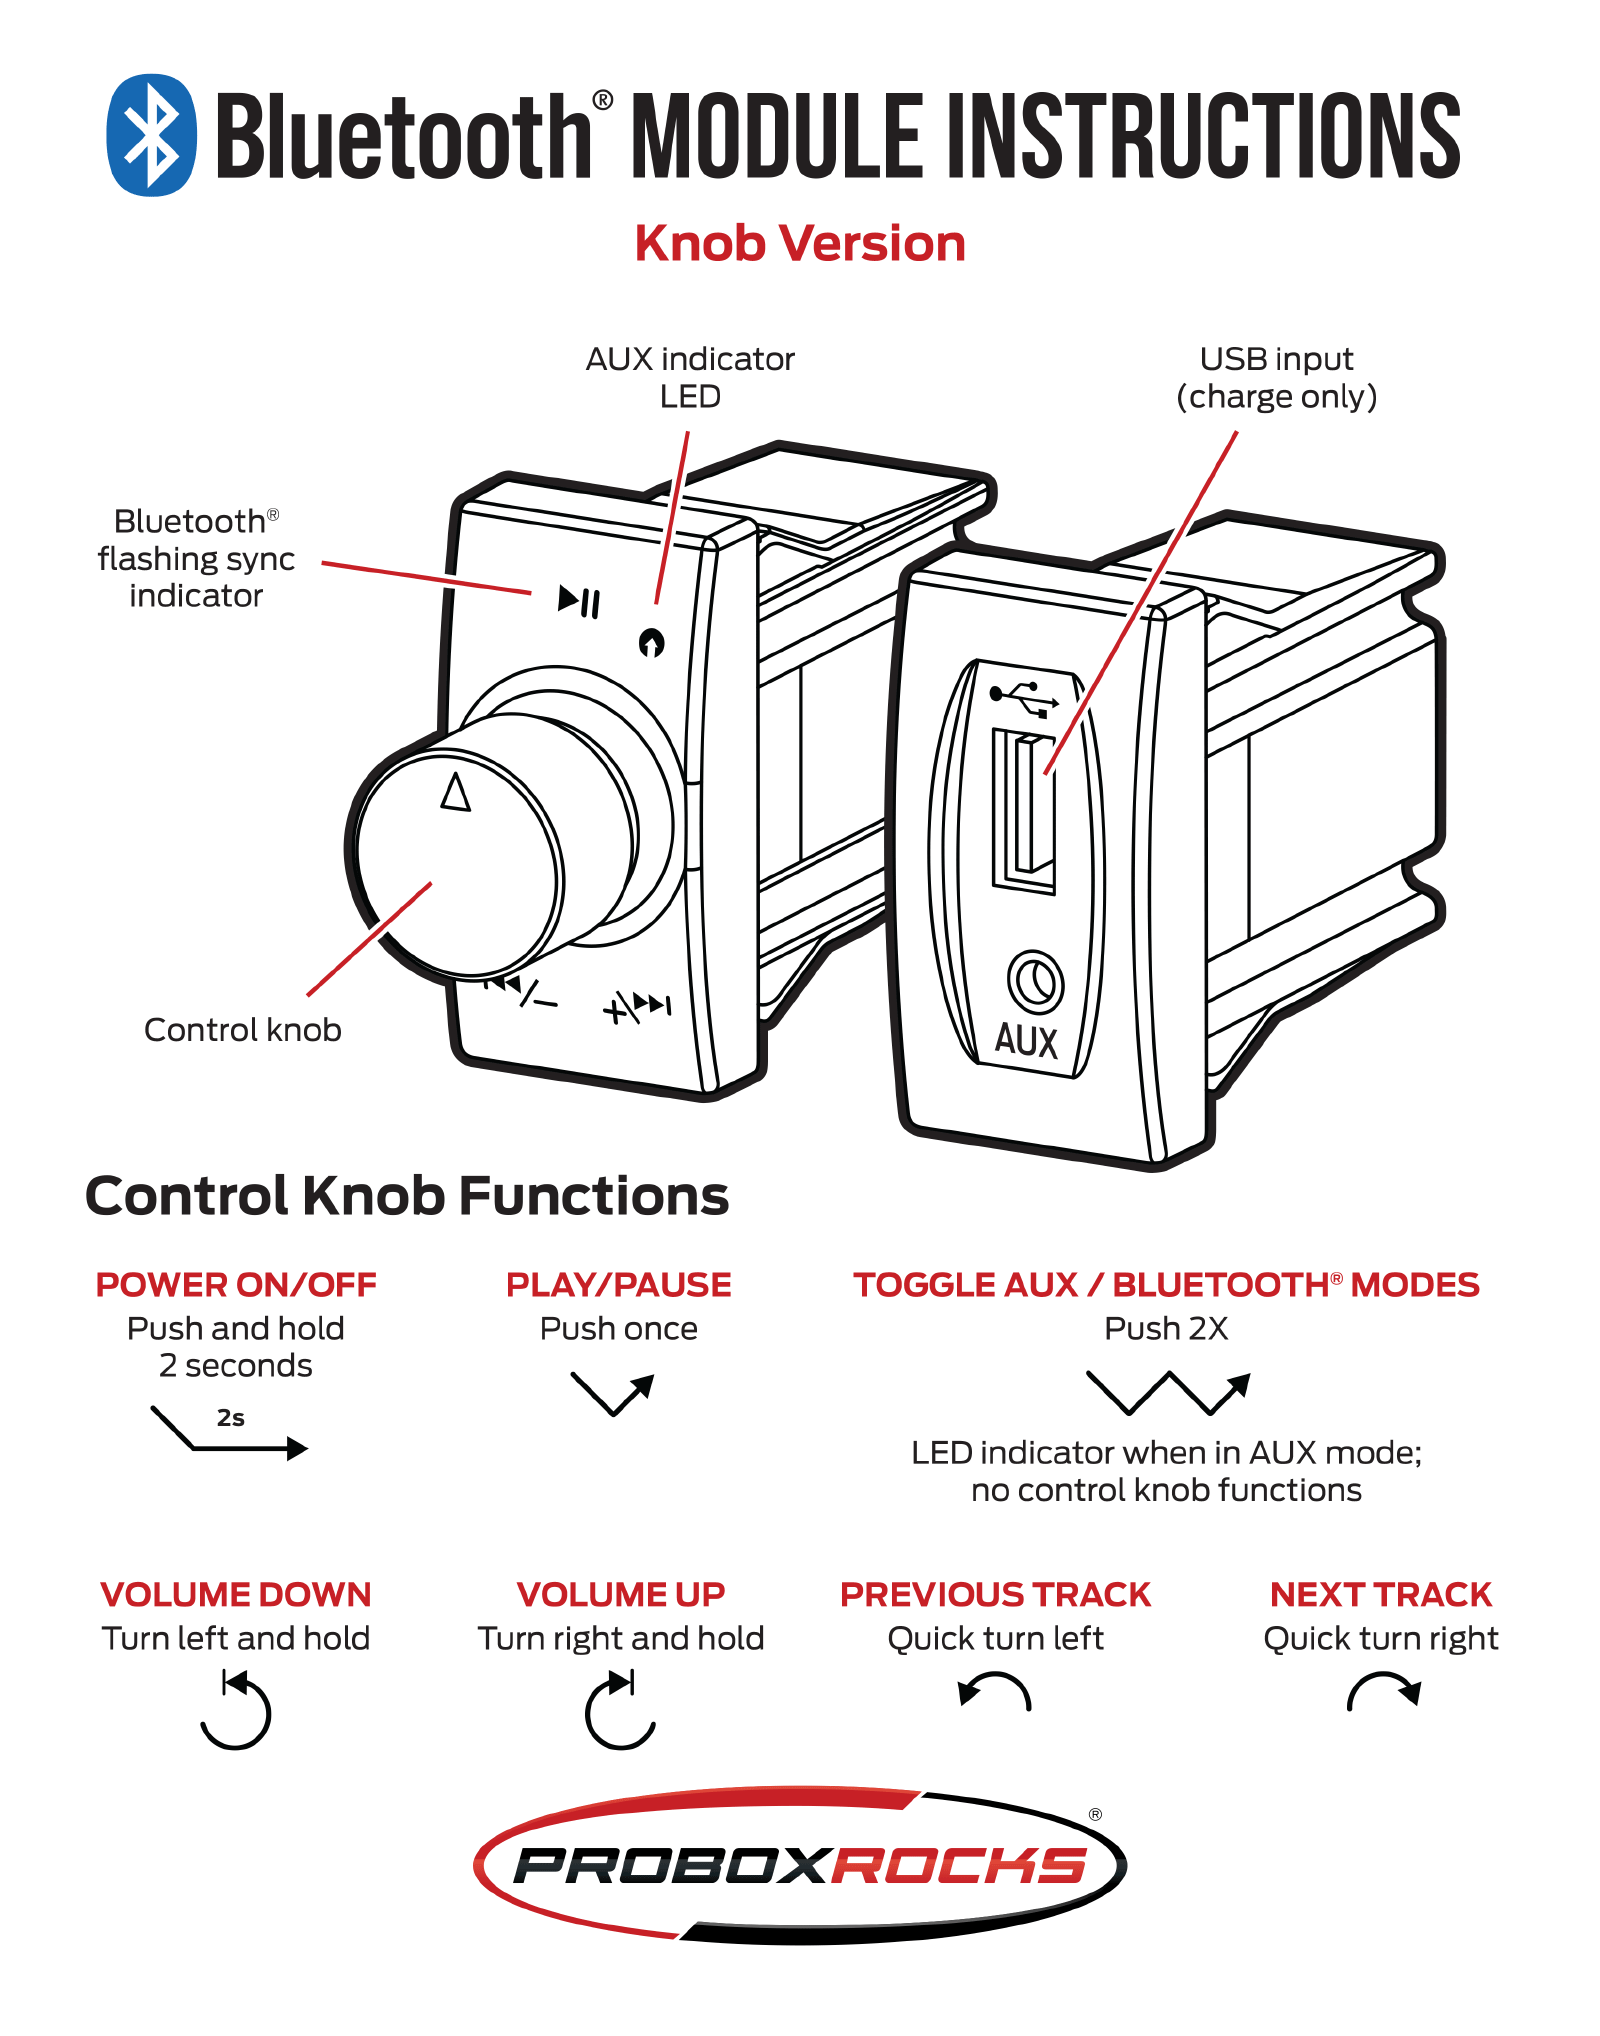 Bluetooth module instructions